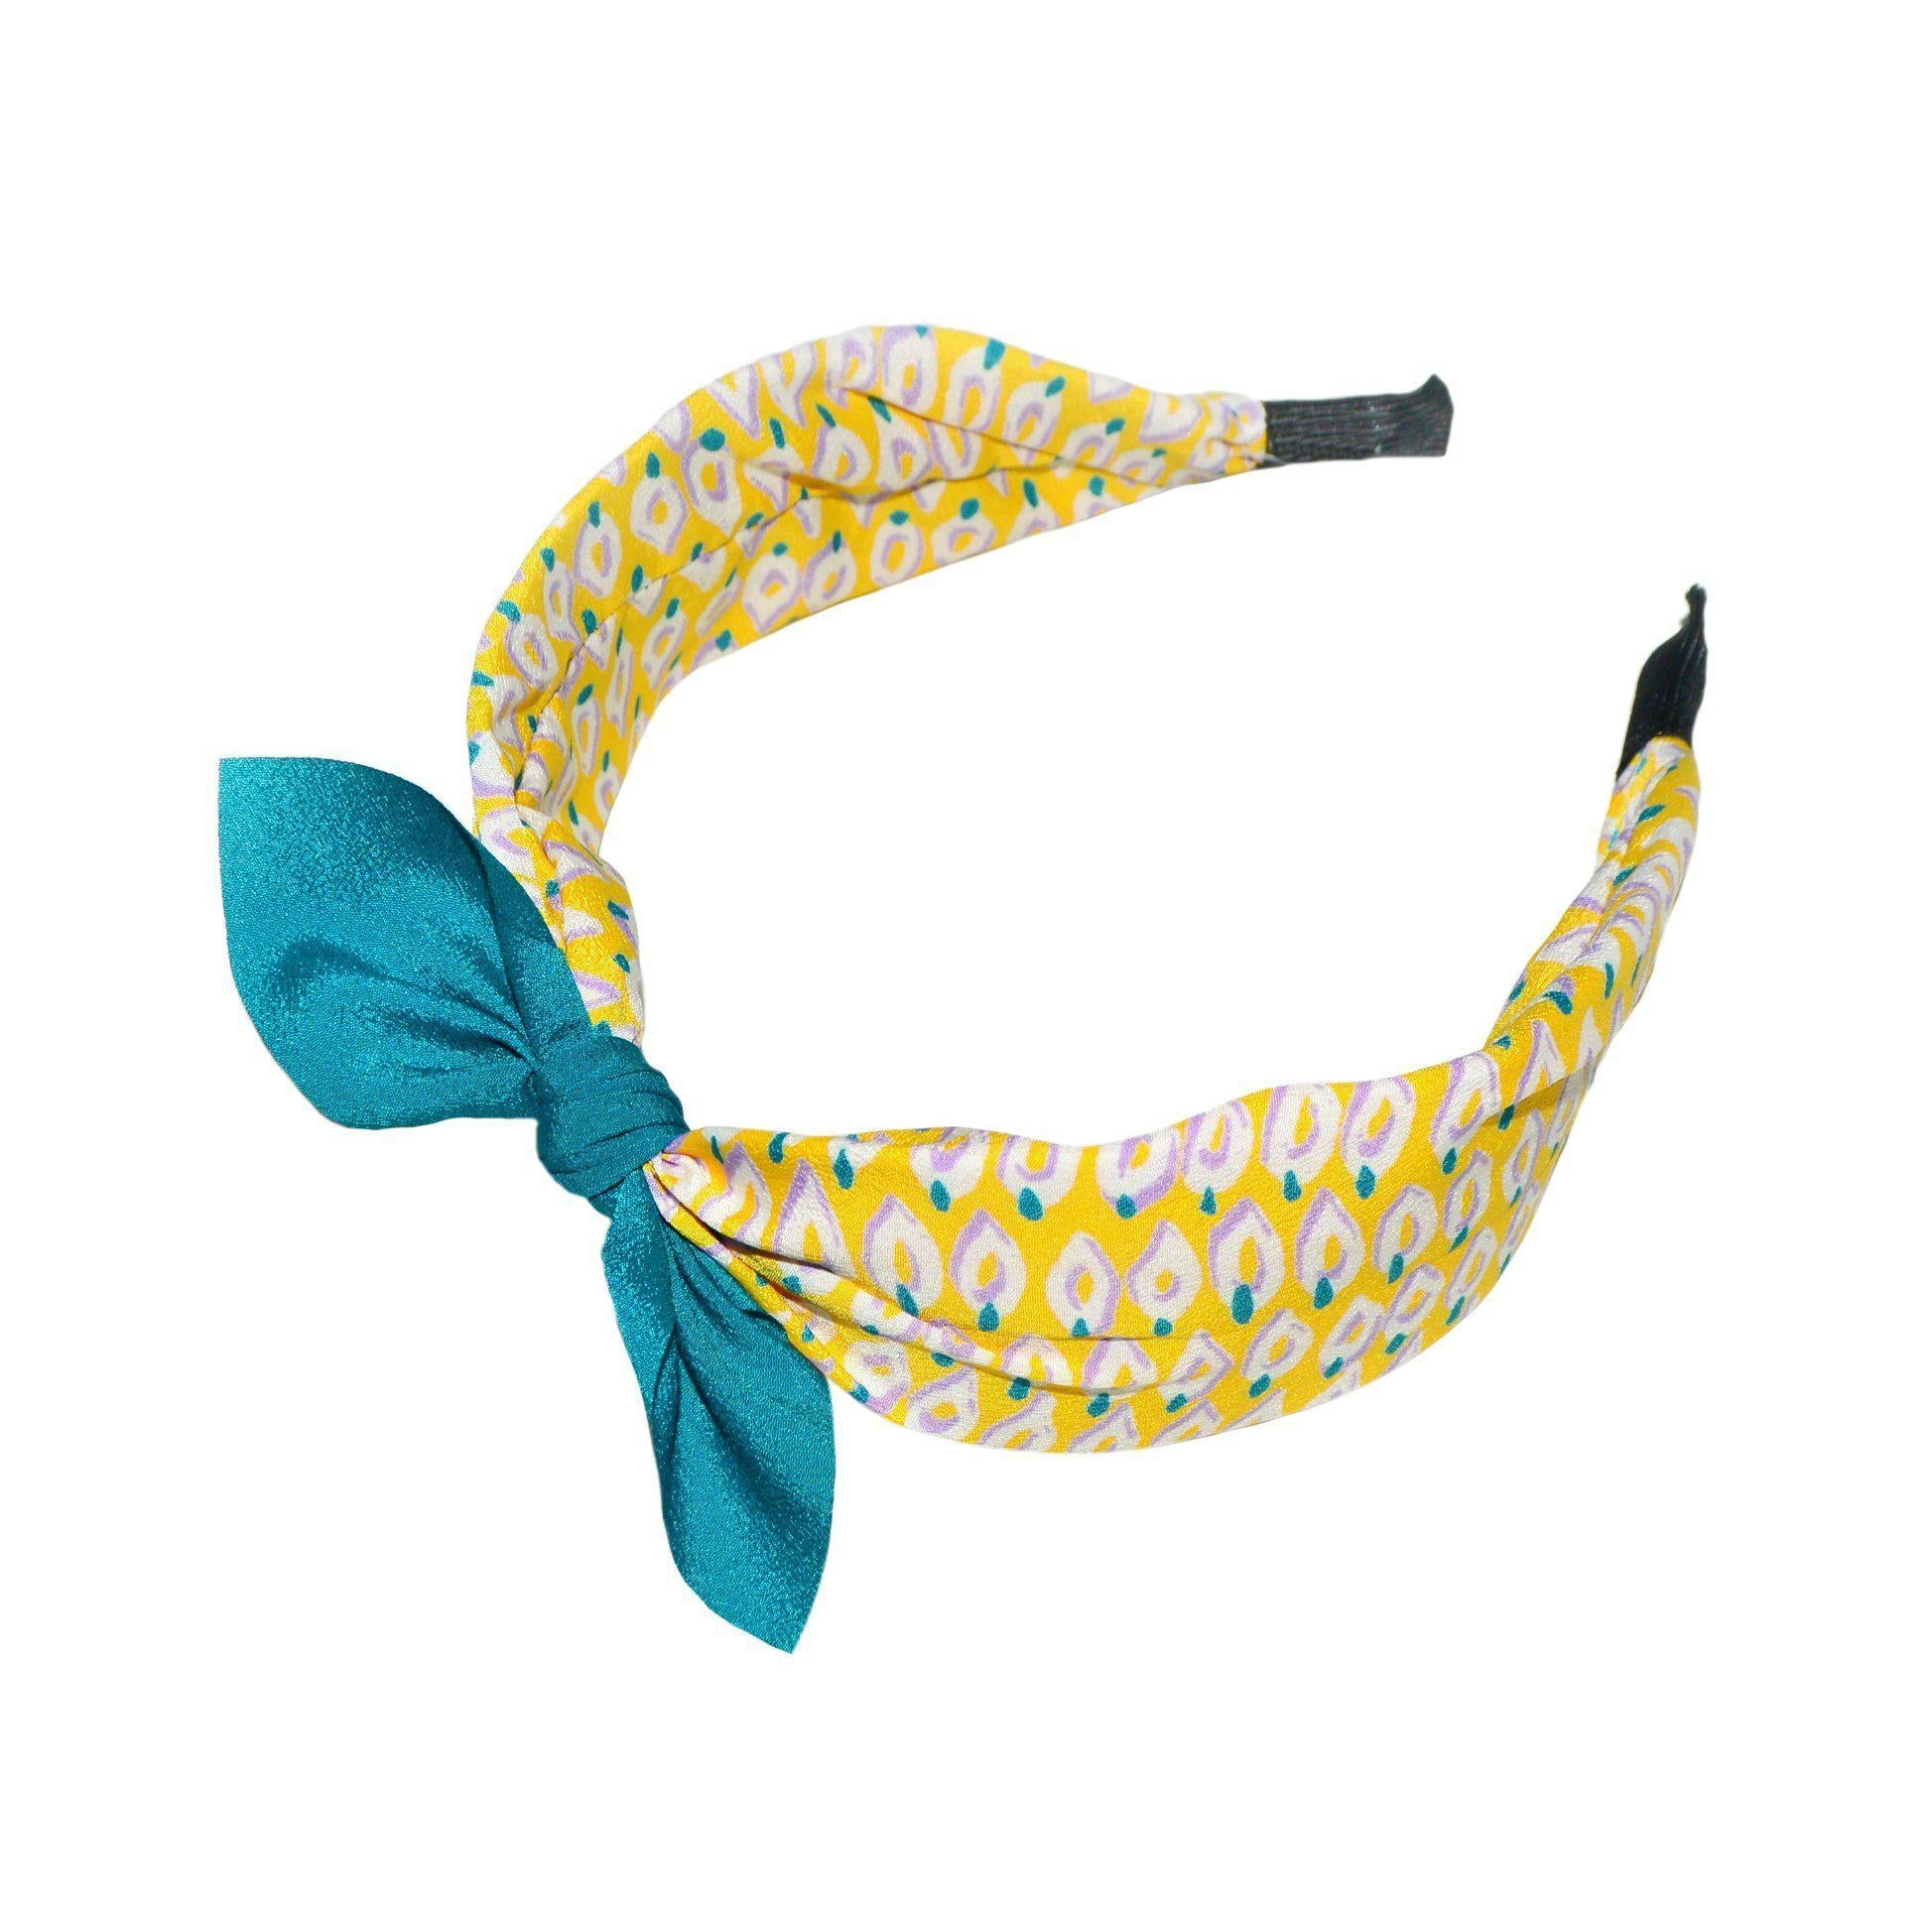 Handmade Abstract Pattern Headband-Headbands-Tegen Accessories-Yellow/Teal-Tegen Accessories